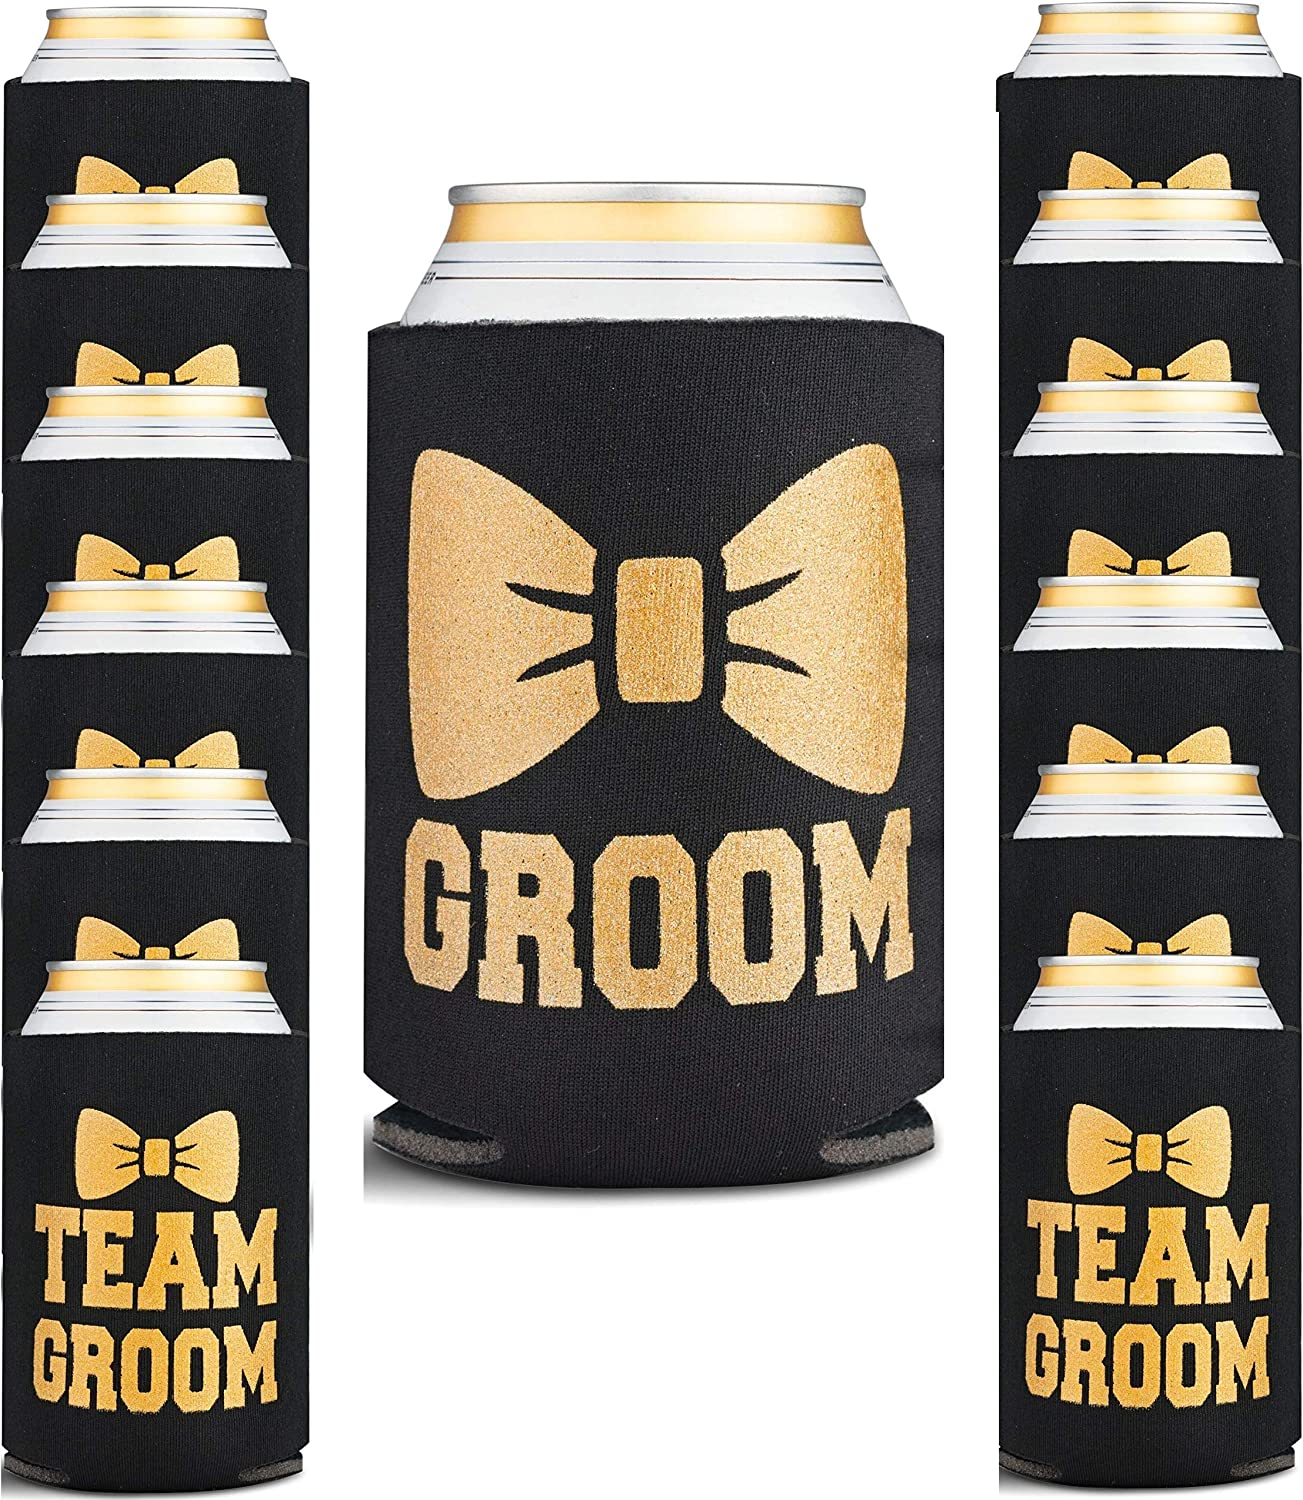 Bachelor Party Decorations for Men - Groomsmen & Groom Beverage Can Cooler Sleeves & Party Game - Bachelor Party Favors for Wedding, Insulated Holders, 13 Pack, Black and Gold